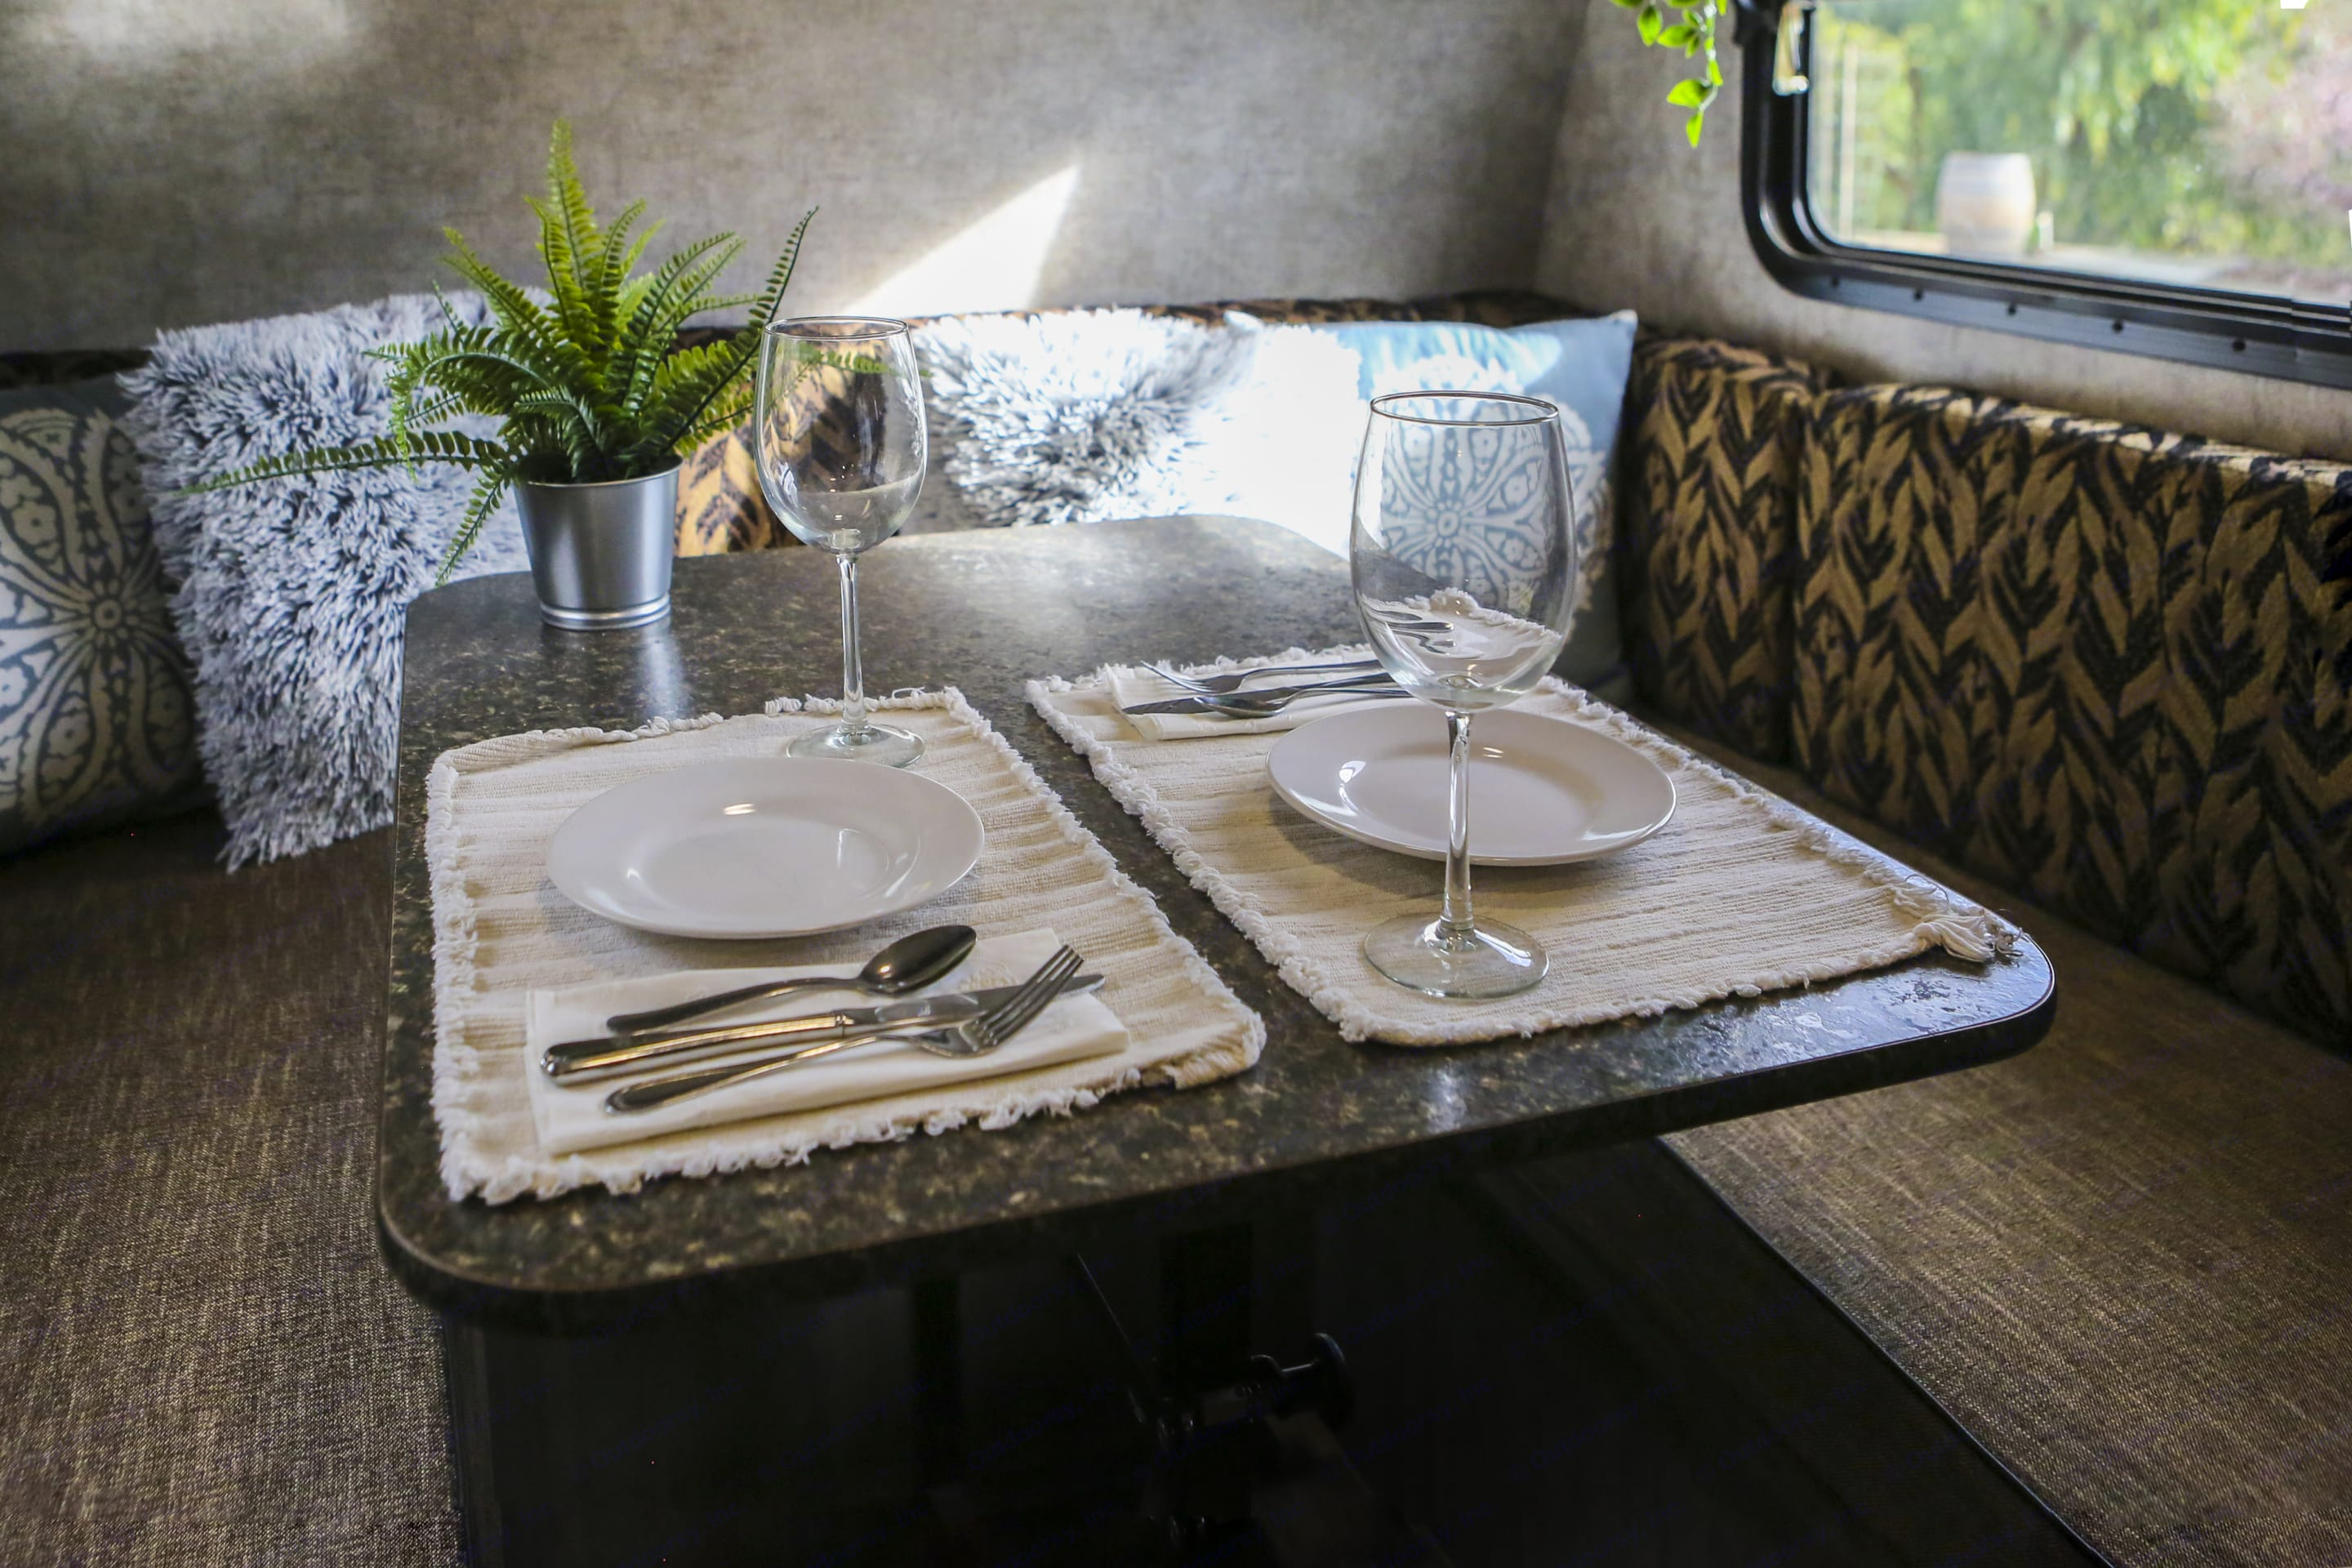 Enjoy a home cooked meal while on the road, or double the table as a work and/or gaming station.. Winnebago Winnie Drop 2017